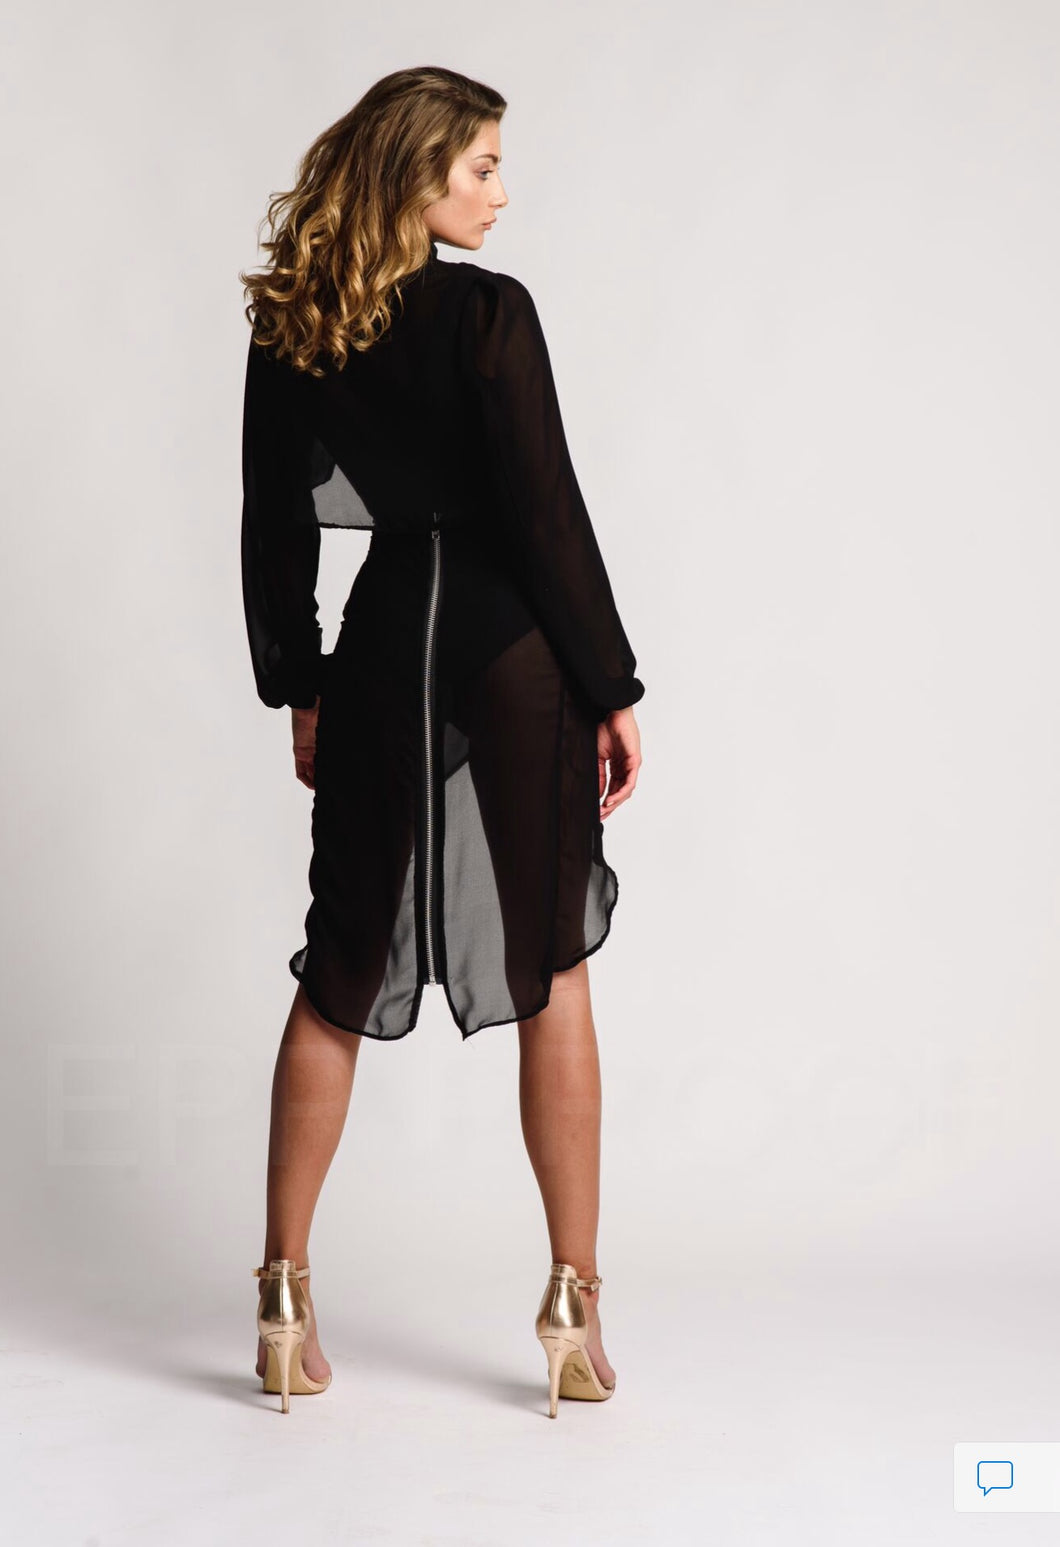 Black Sheer Twin Set Knee Length Skirt Black Body Crop Jacket